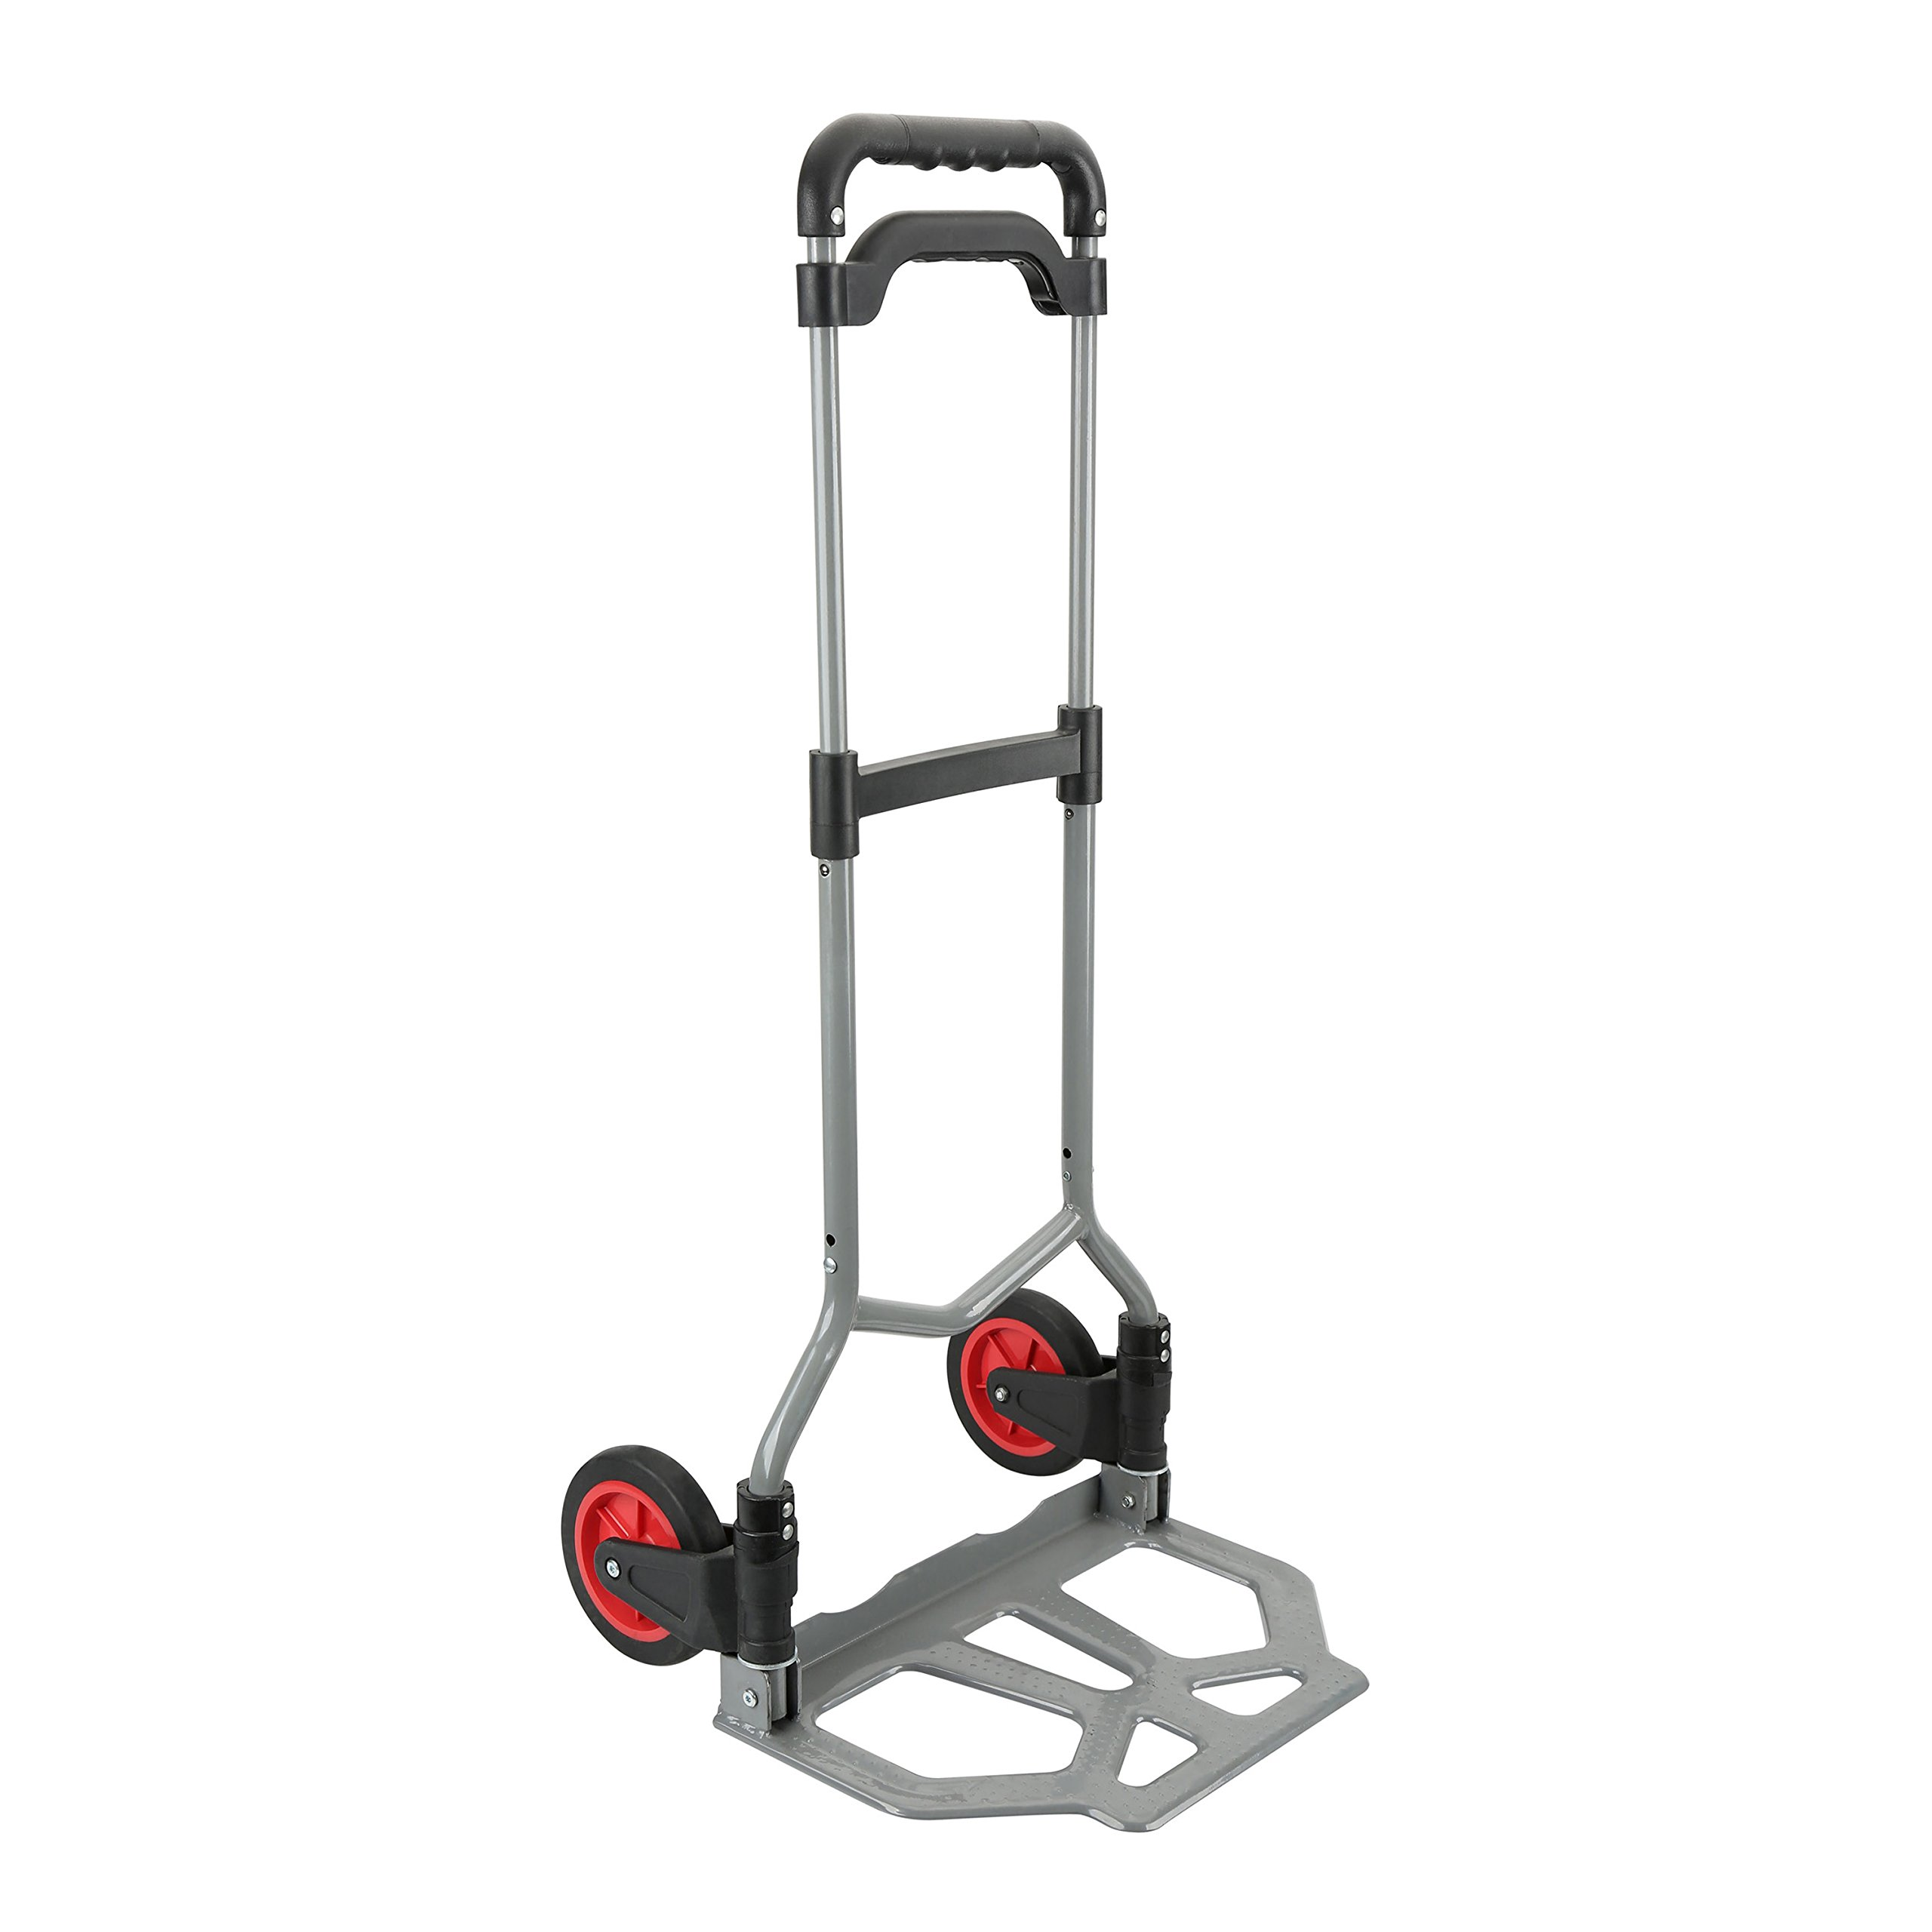 Pack-N-Roll 87-307-917 260 LBS Capacity Portable Hand Truck, One Size, Gray